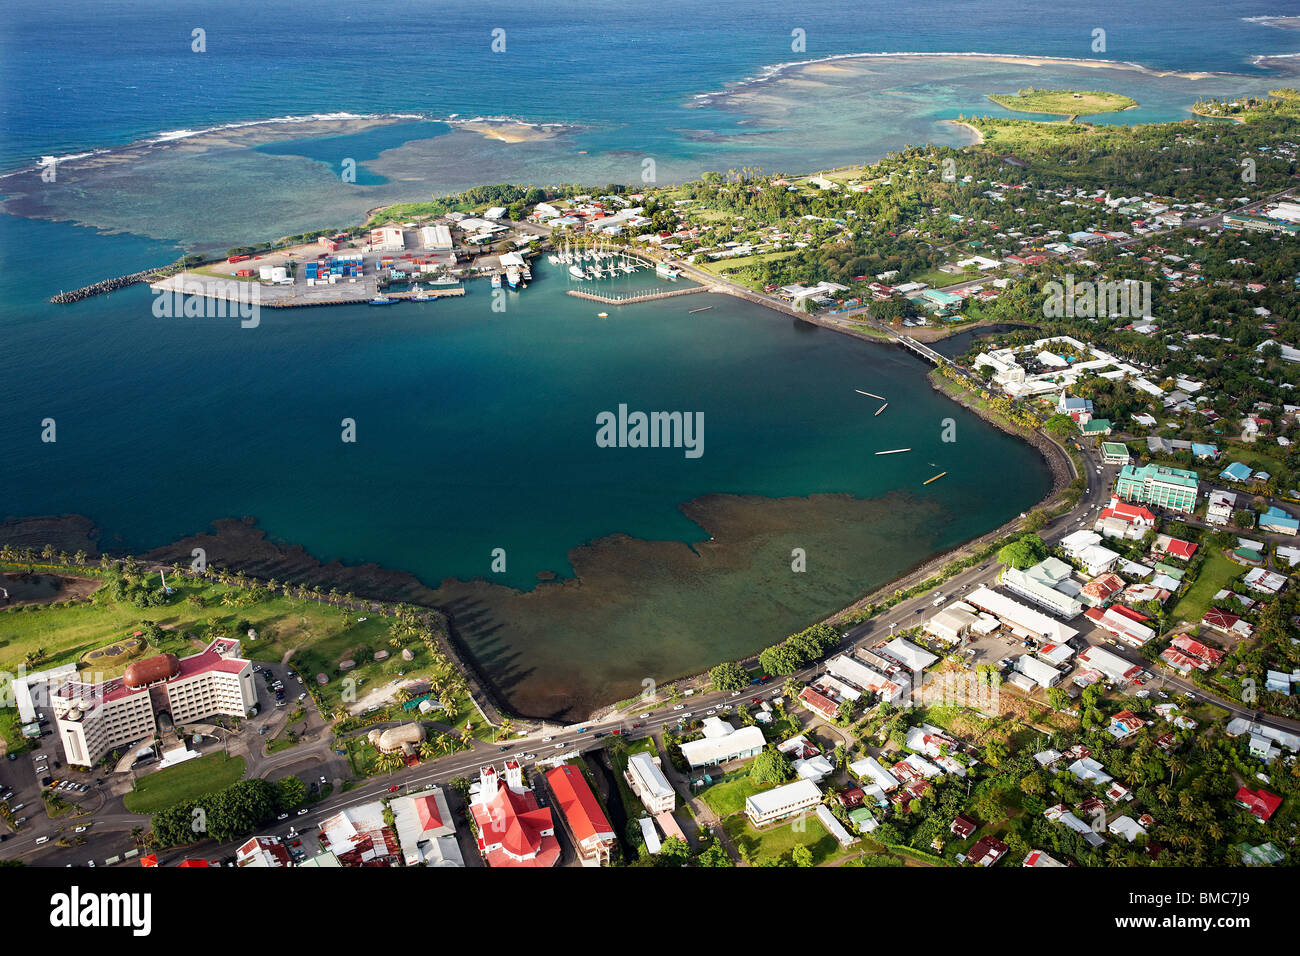 Aerial view of Apia town and harbour, Upolu, Samoa - Stock Image